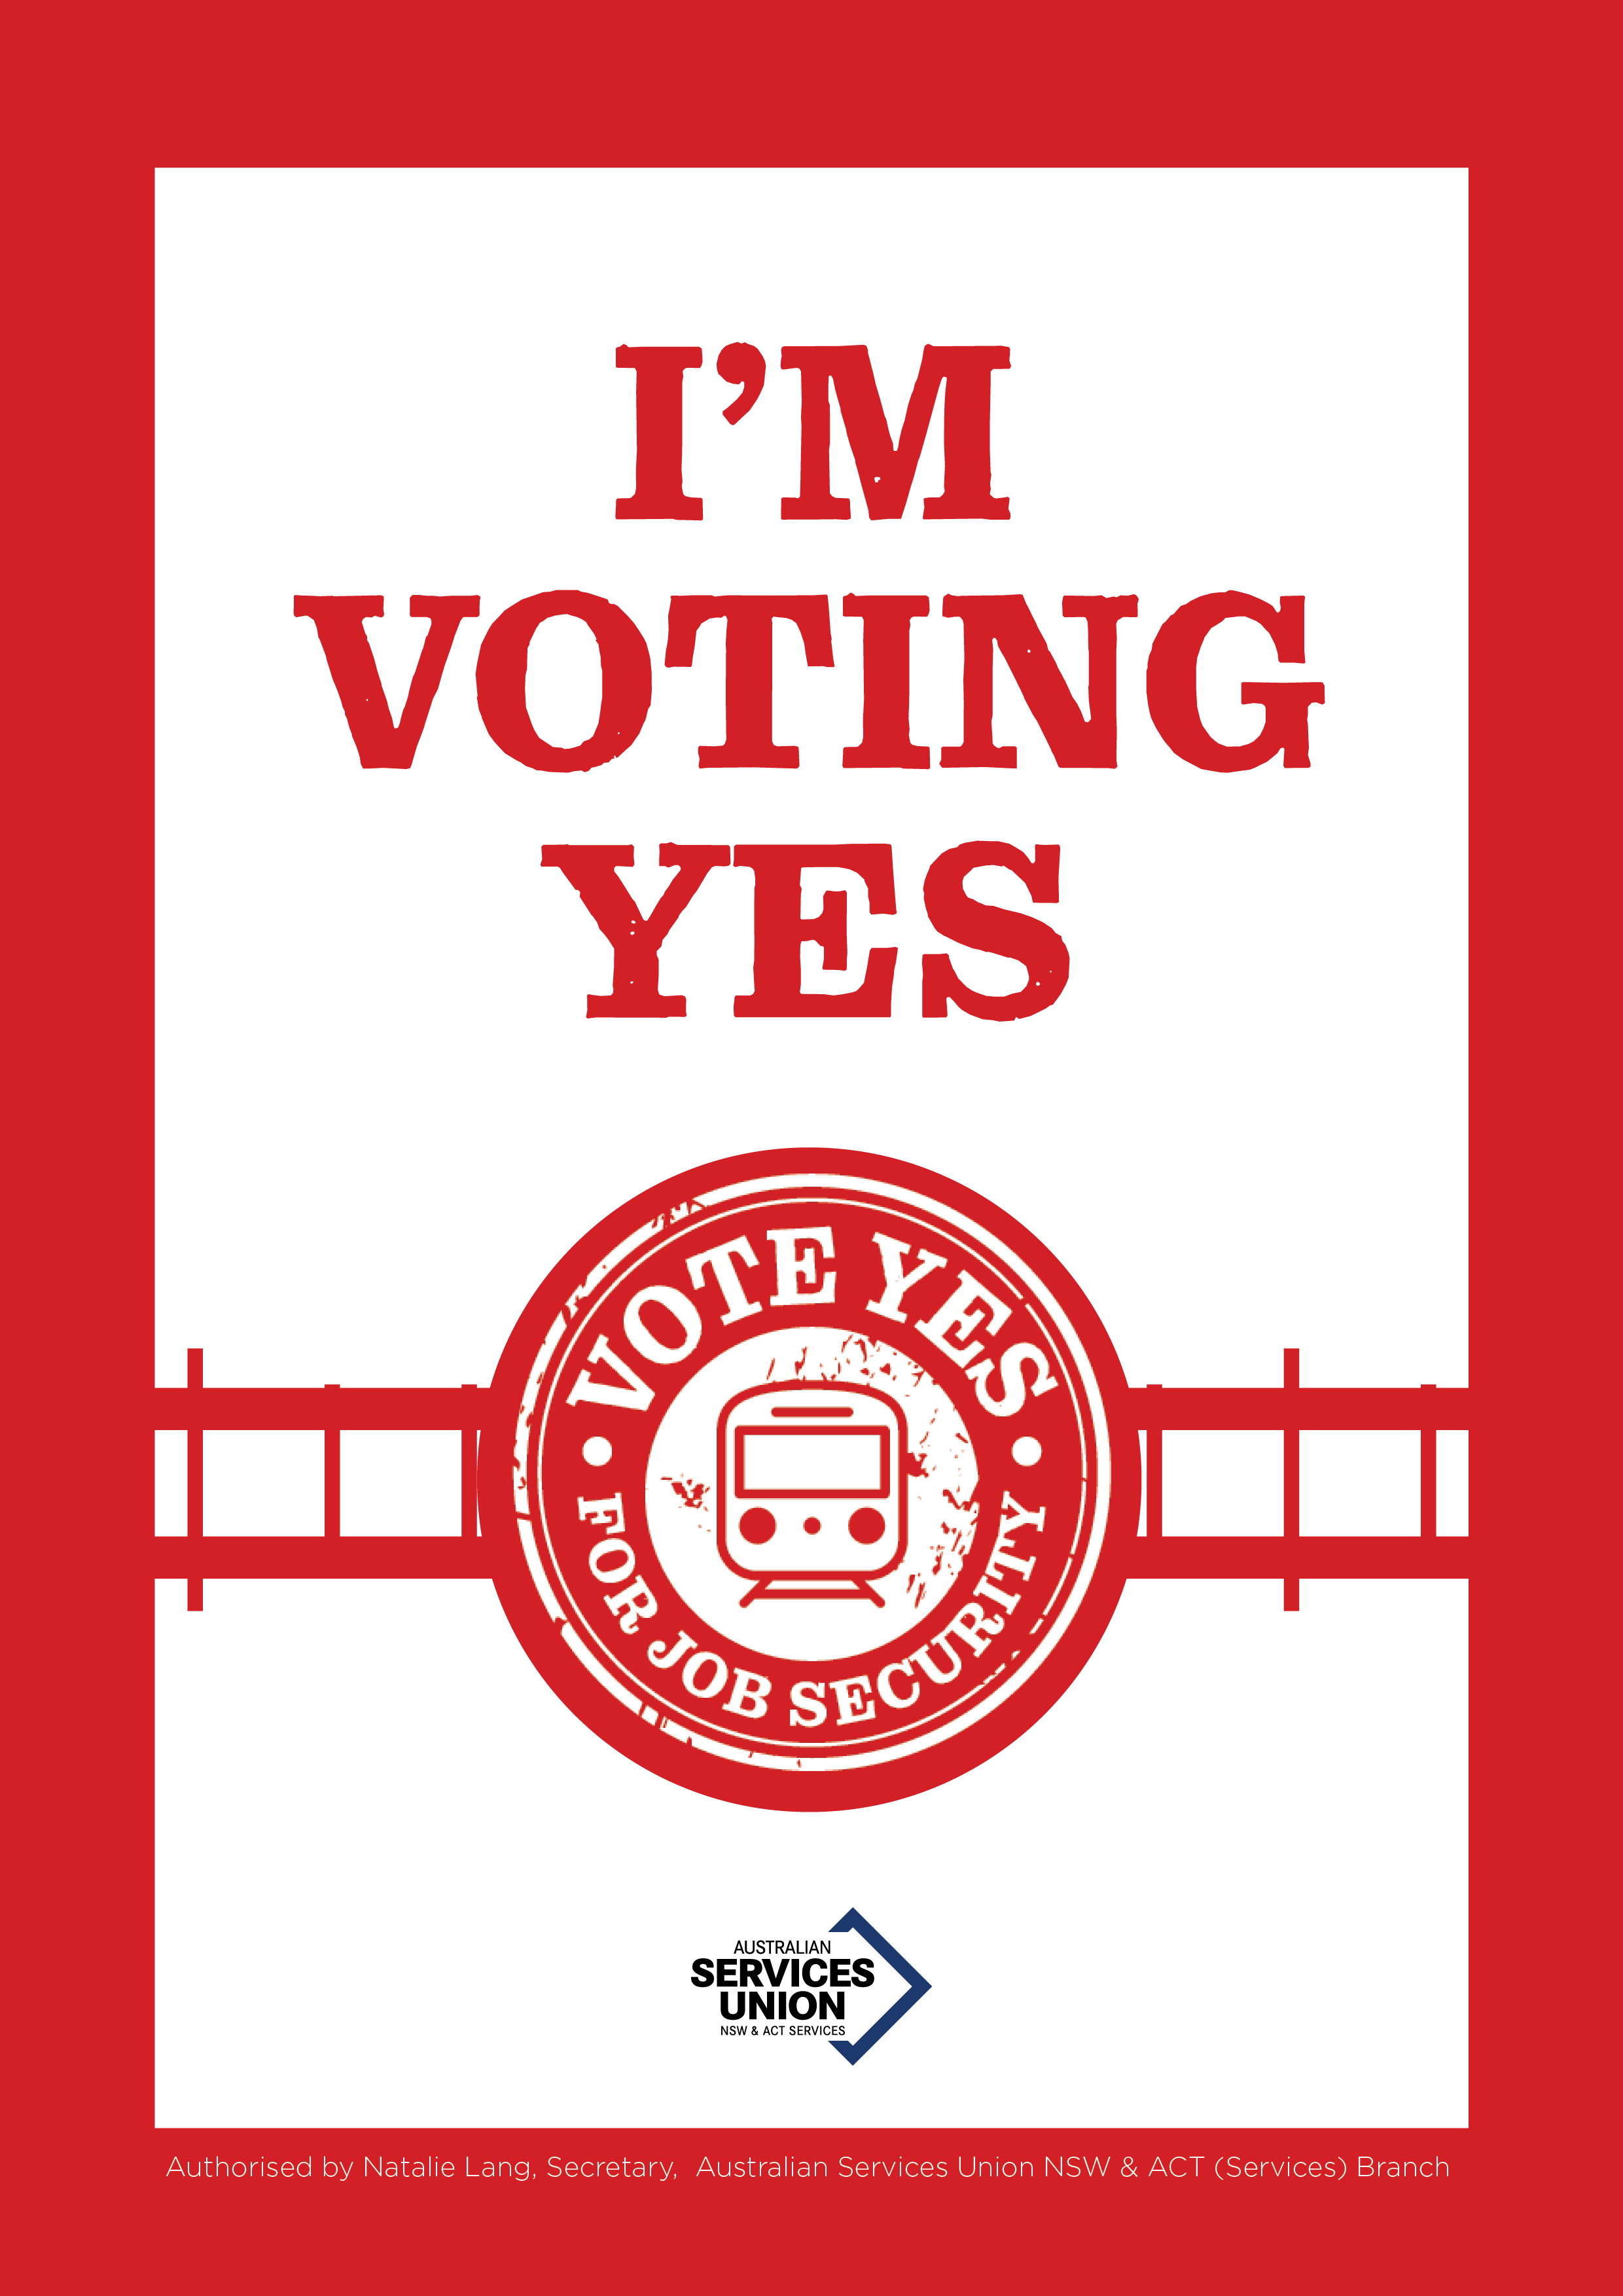 https://d3n8a8pro7vhmx.cloudfront.net/asuservices/pages/3637/attachments/original/1629943444/Jobsecurity-VoteYES-Poster.png?1629943444